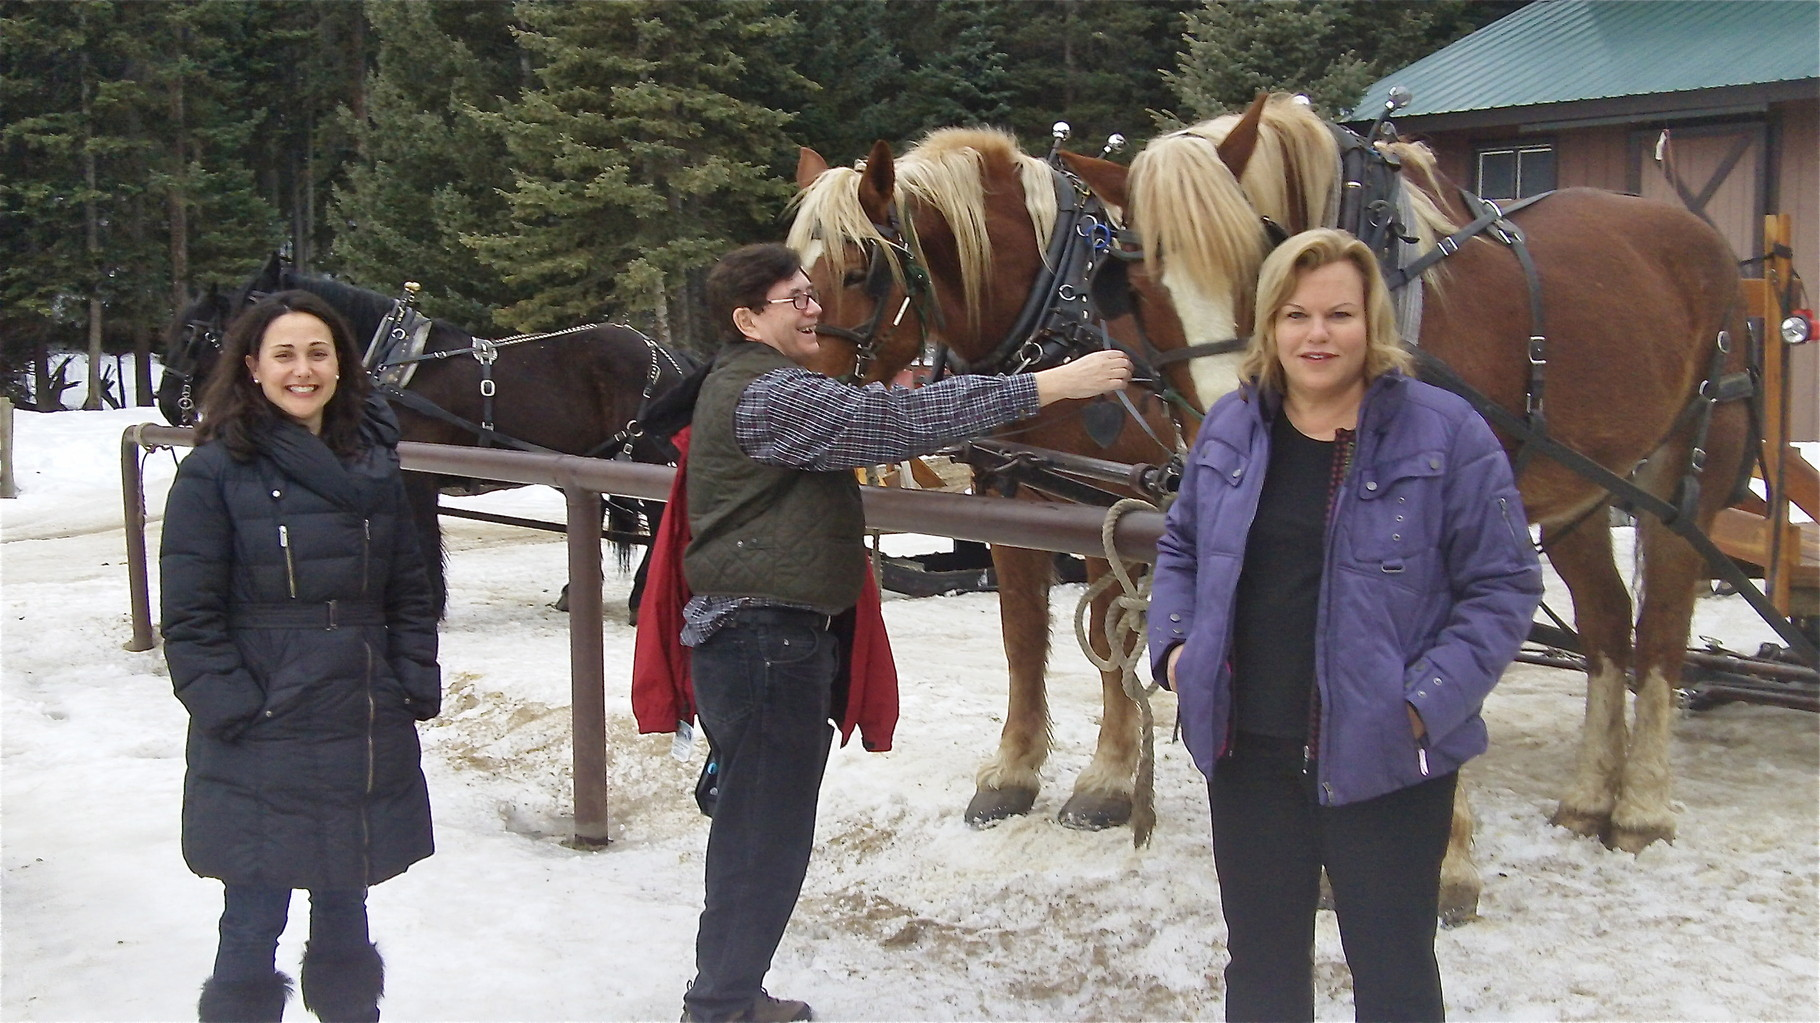 Allie Kagel, John, and Celeste in front of sleighride horses Pete and Mike!